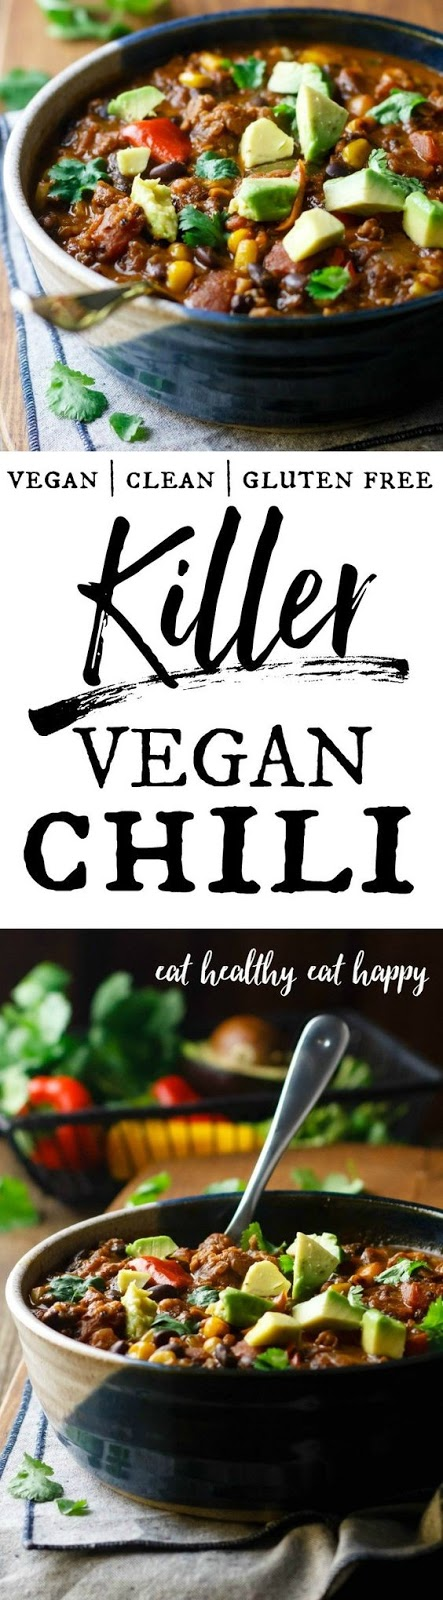 KILLER VEGAN CHILI #vegan #chili #soup #dinner